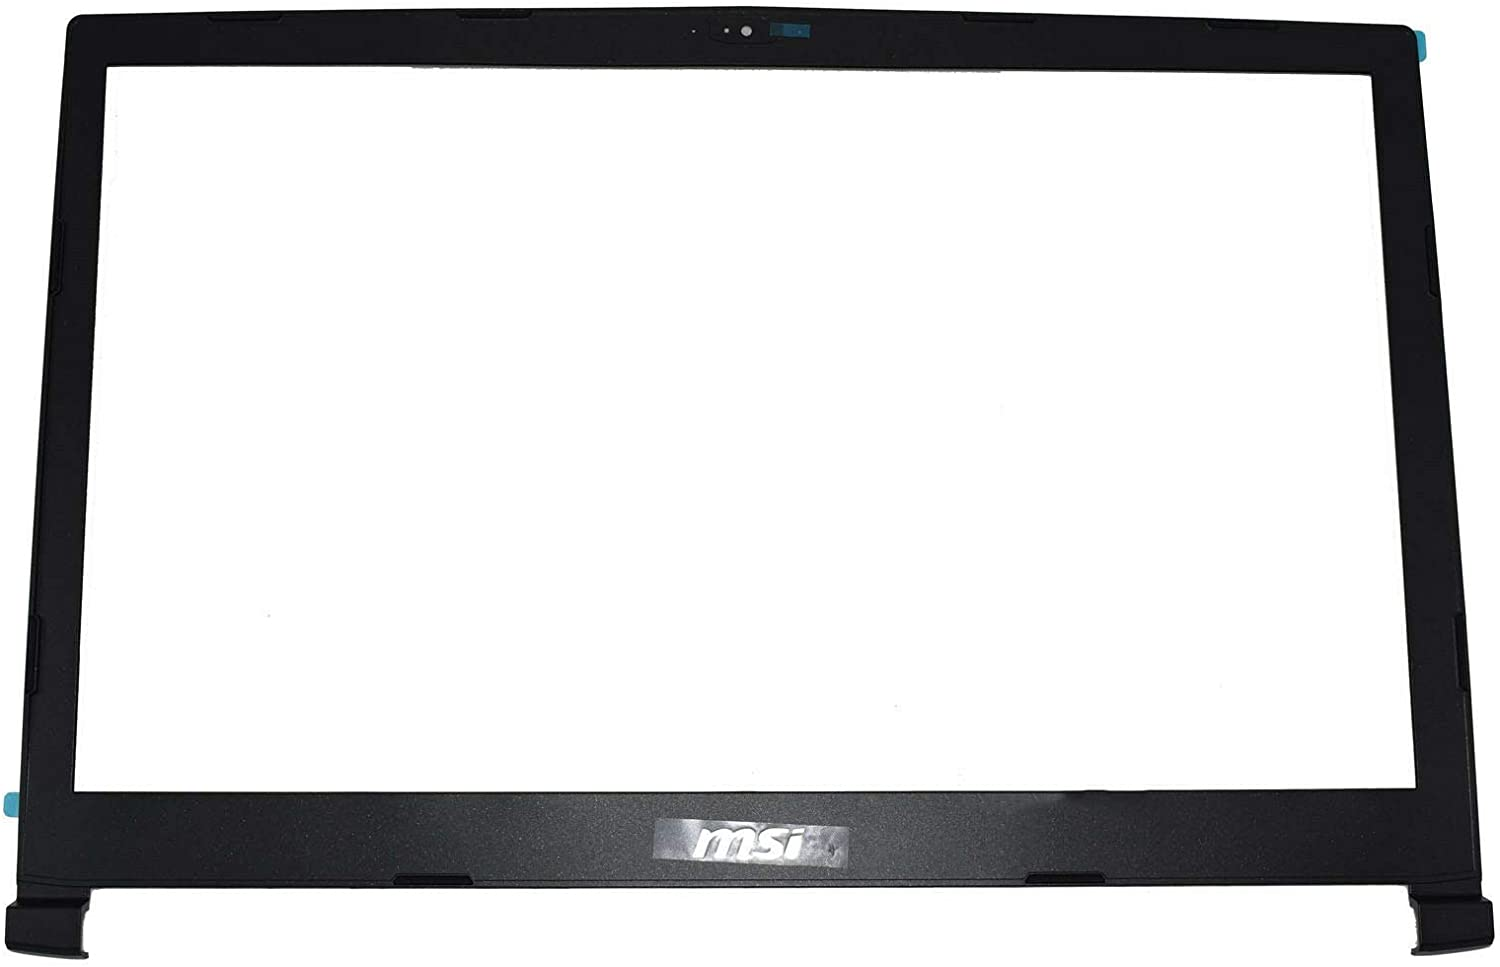 New Replacement for LCD Front Bezel Frame Cover 3077C1B211 for MSI GE73 GE73VR 7RF-006CN